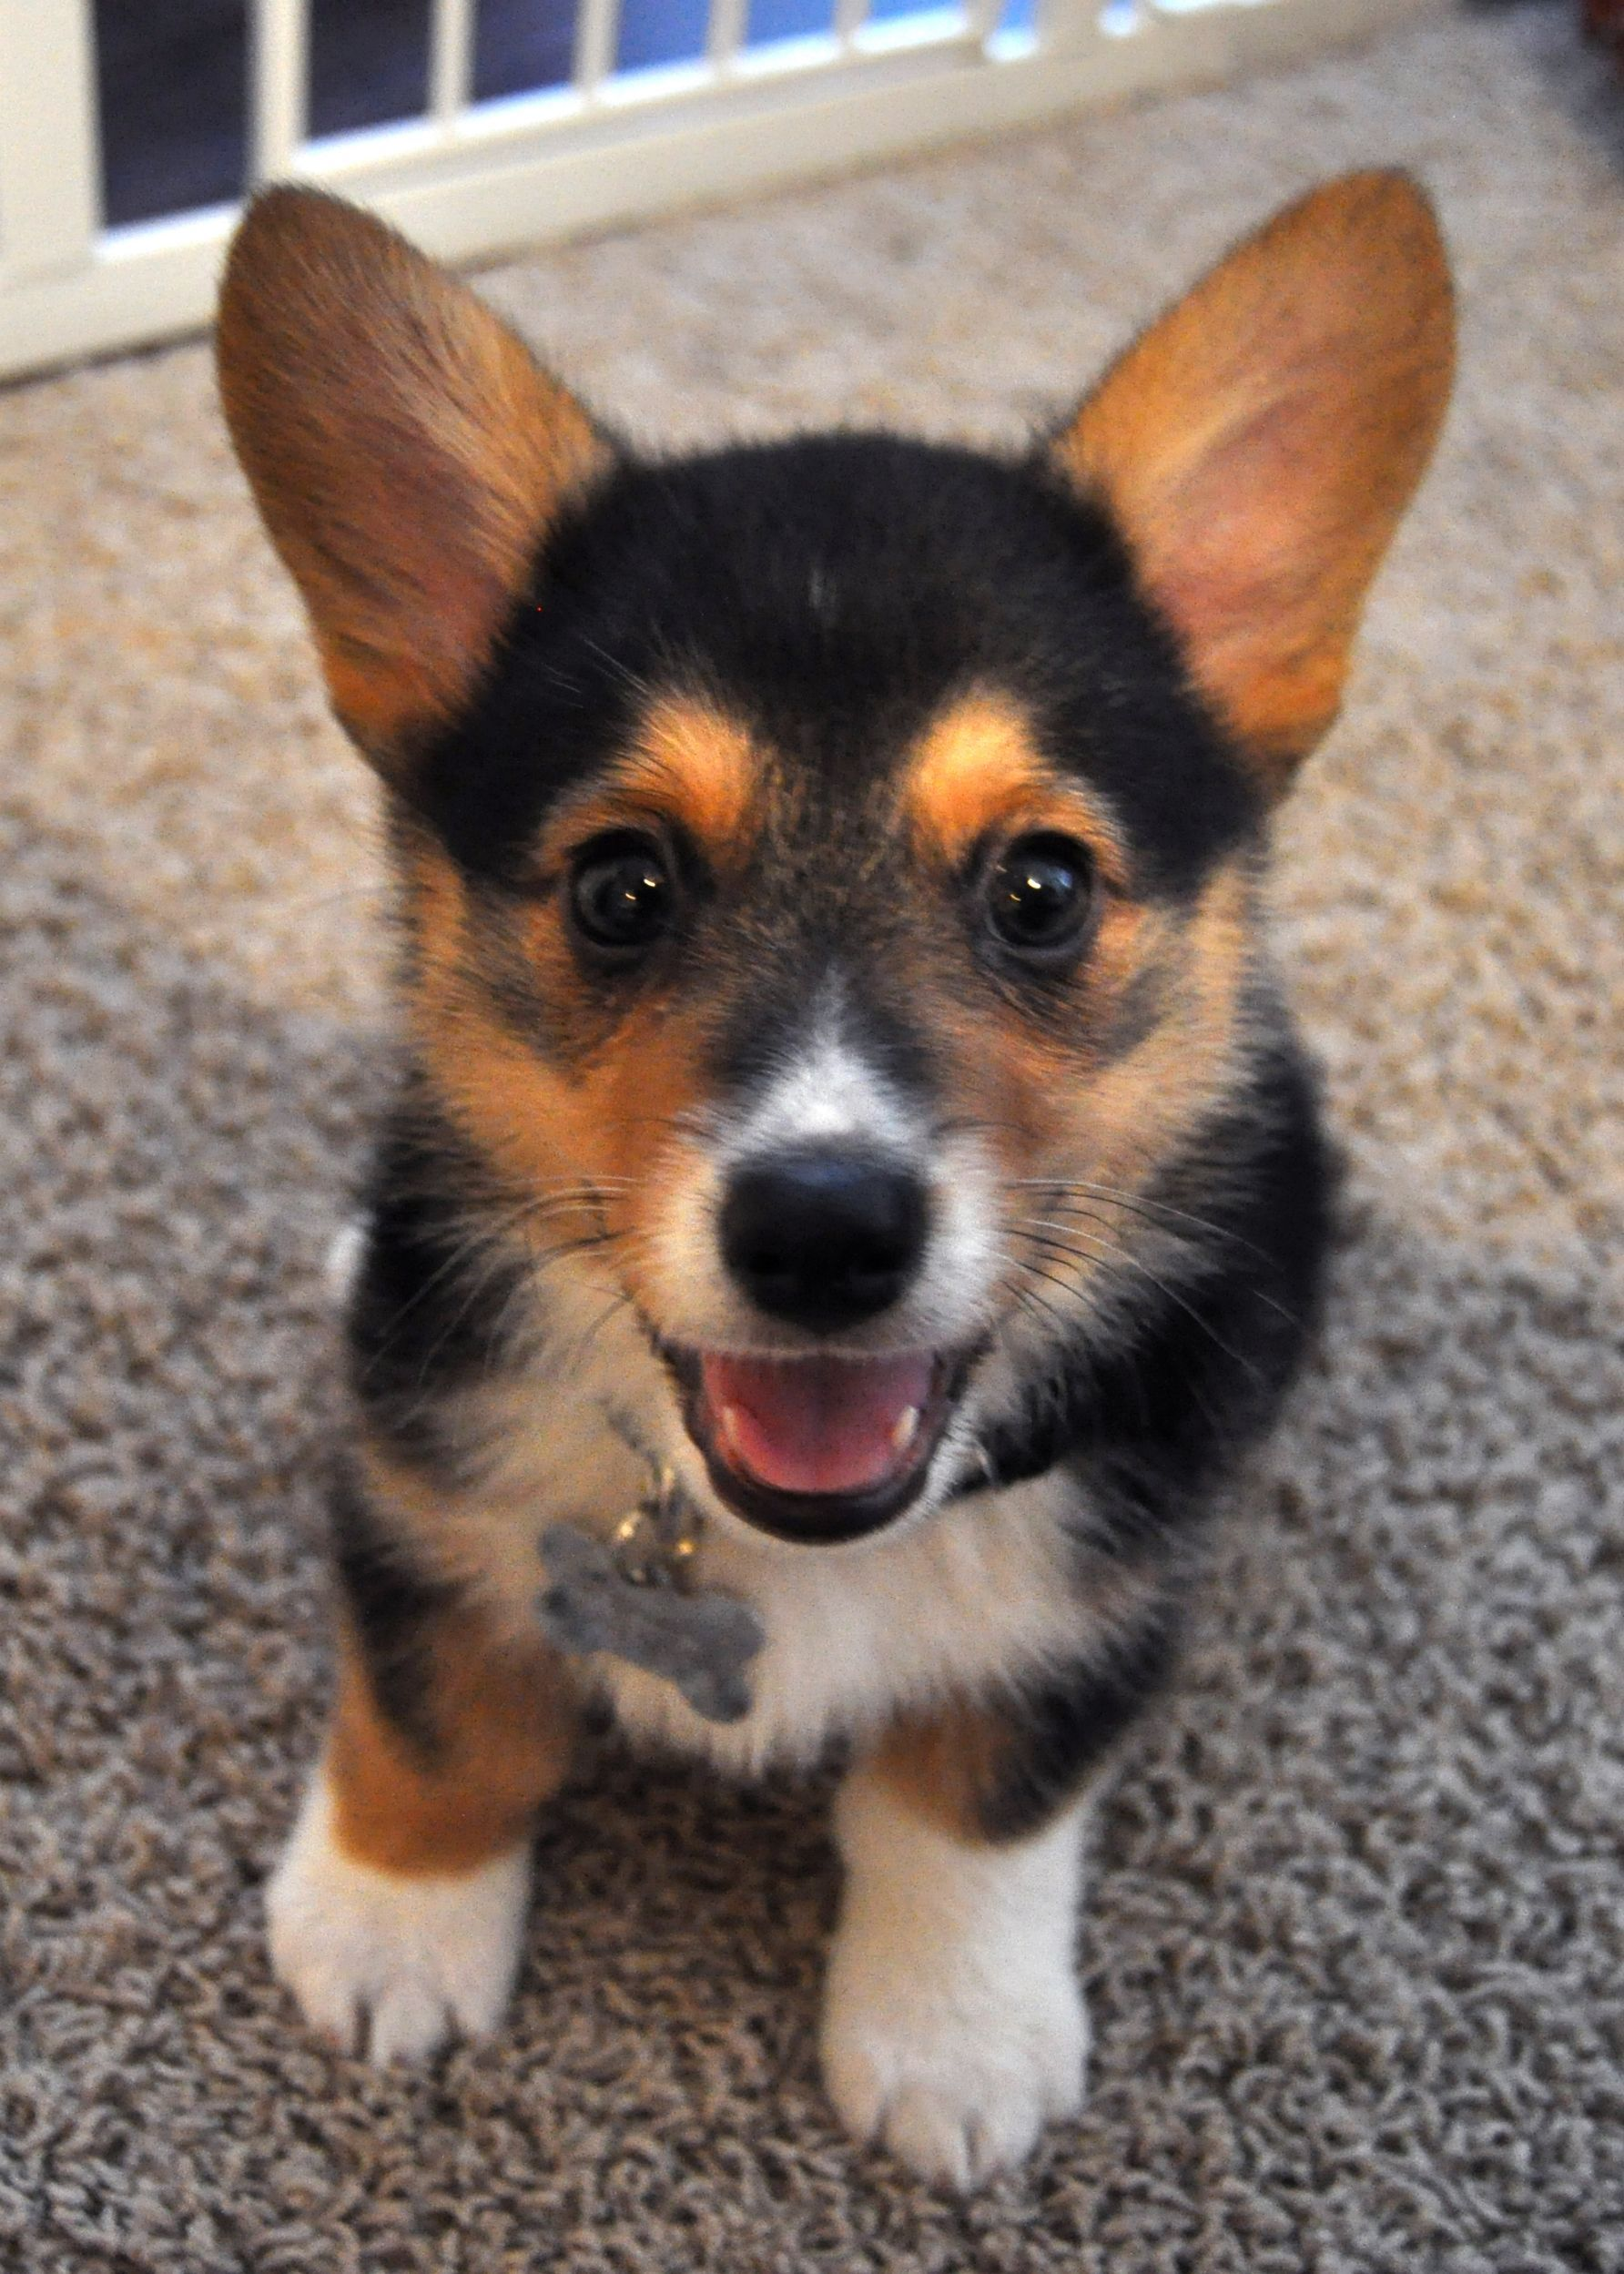 This Is My Corgi Puppy Pancake Corgi Puppies Kitties Cute